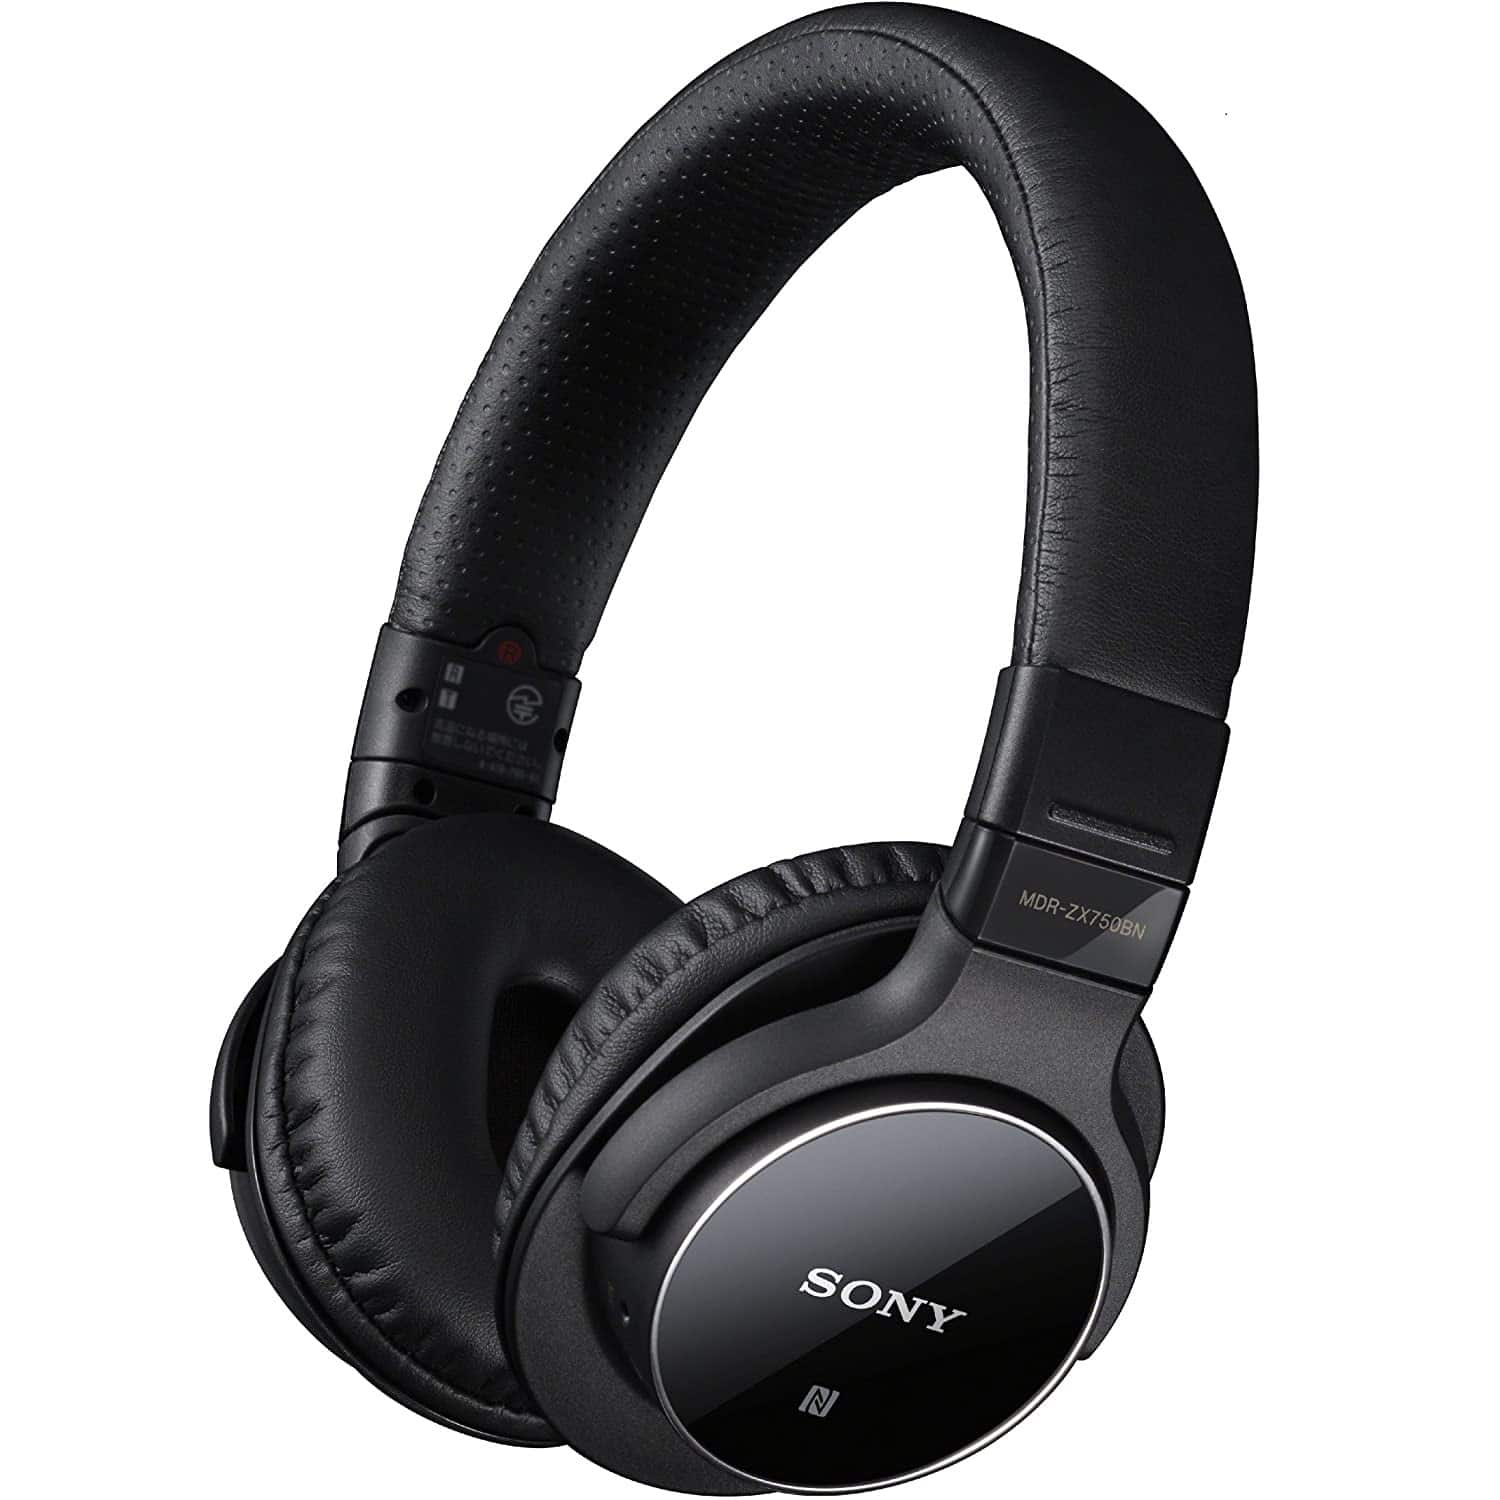 Sony MDR-ZX750BN Wireless headphones: A Complete Review